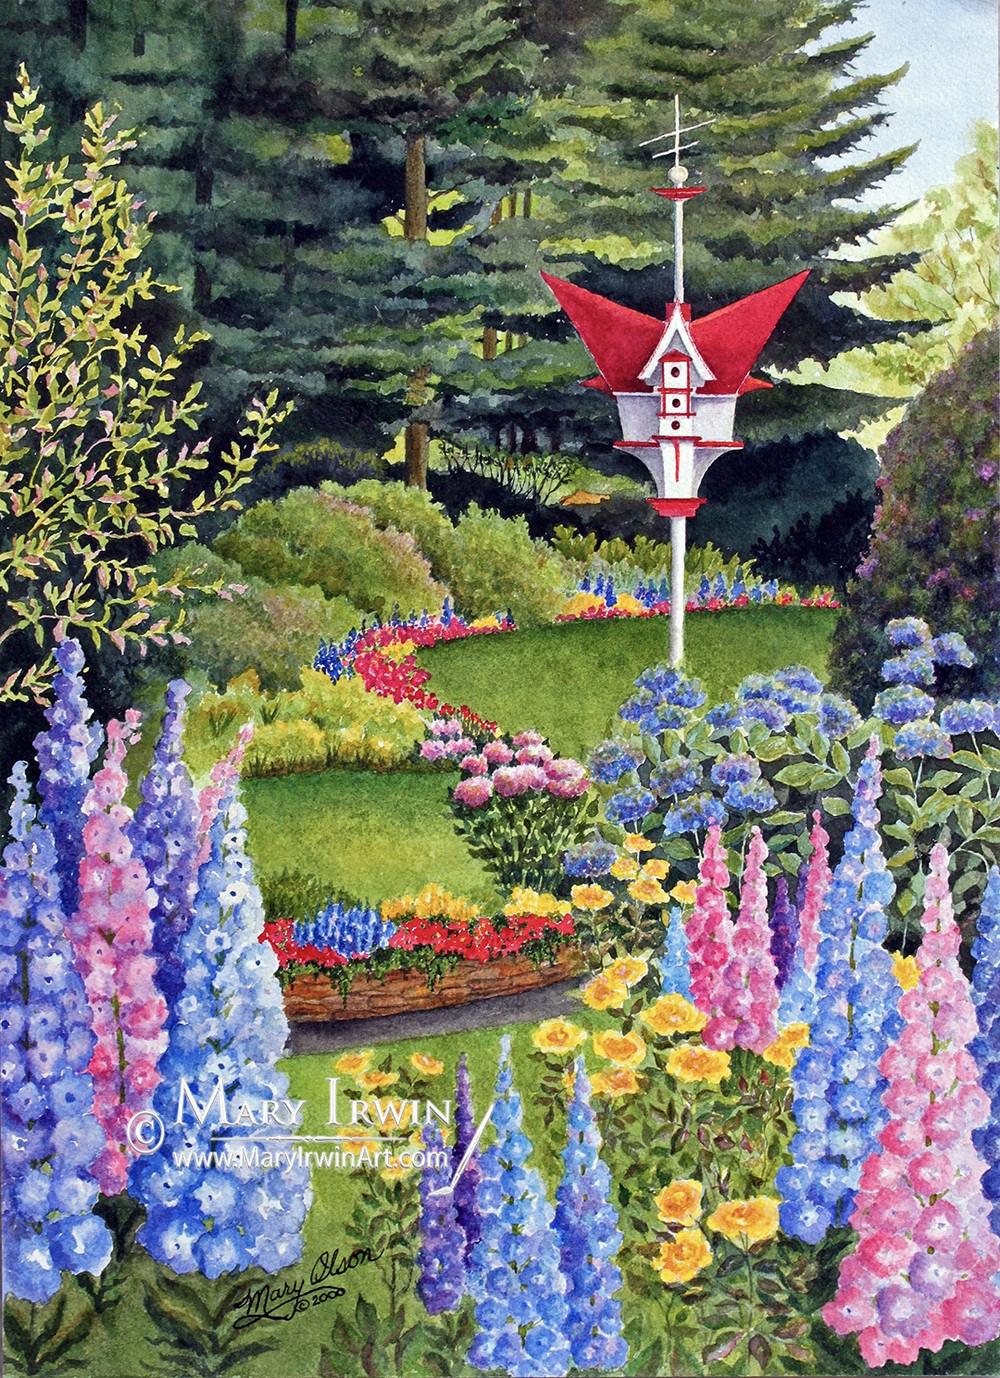 Butchart Gardens Birdhouse  by Mary Irwin